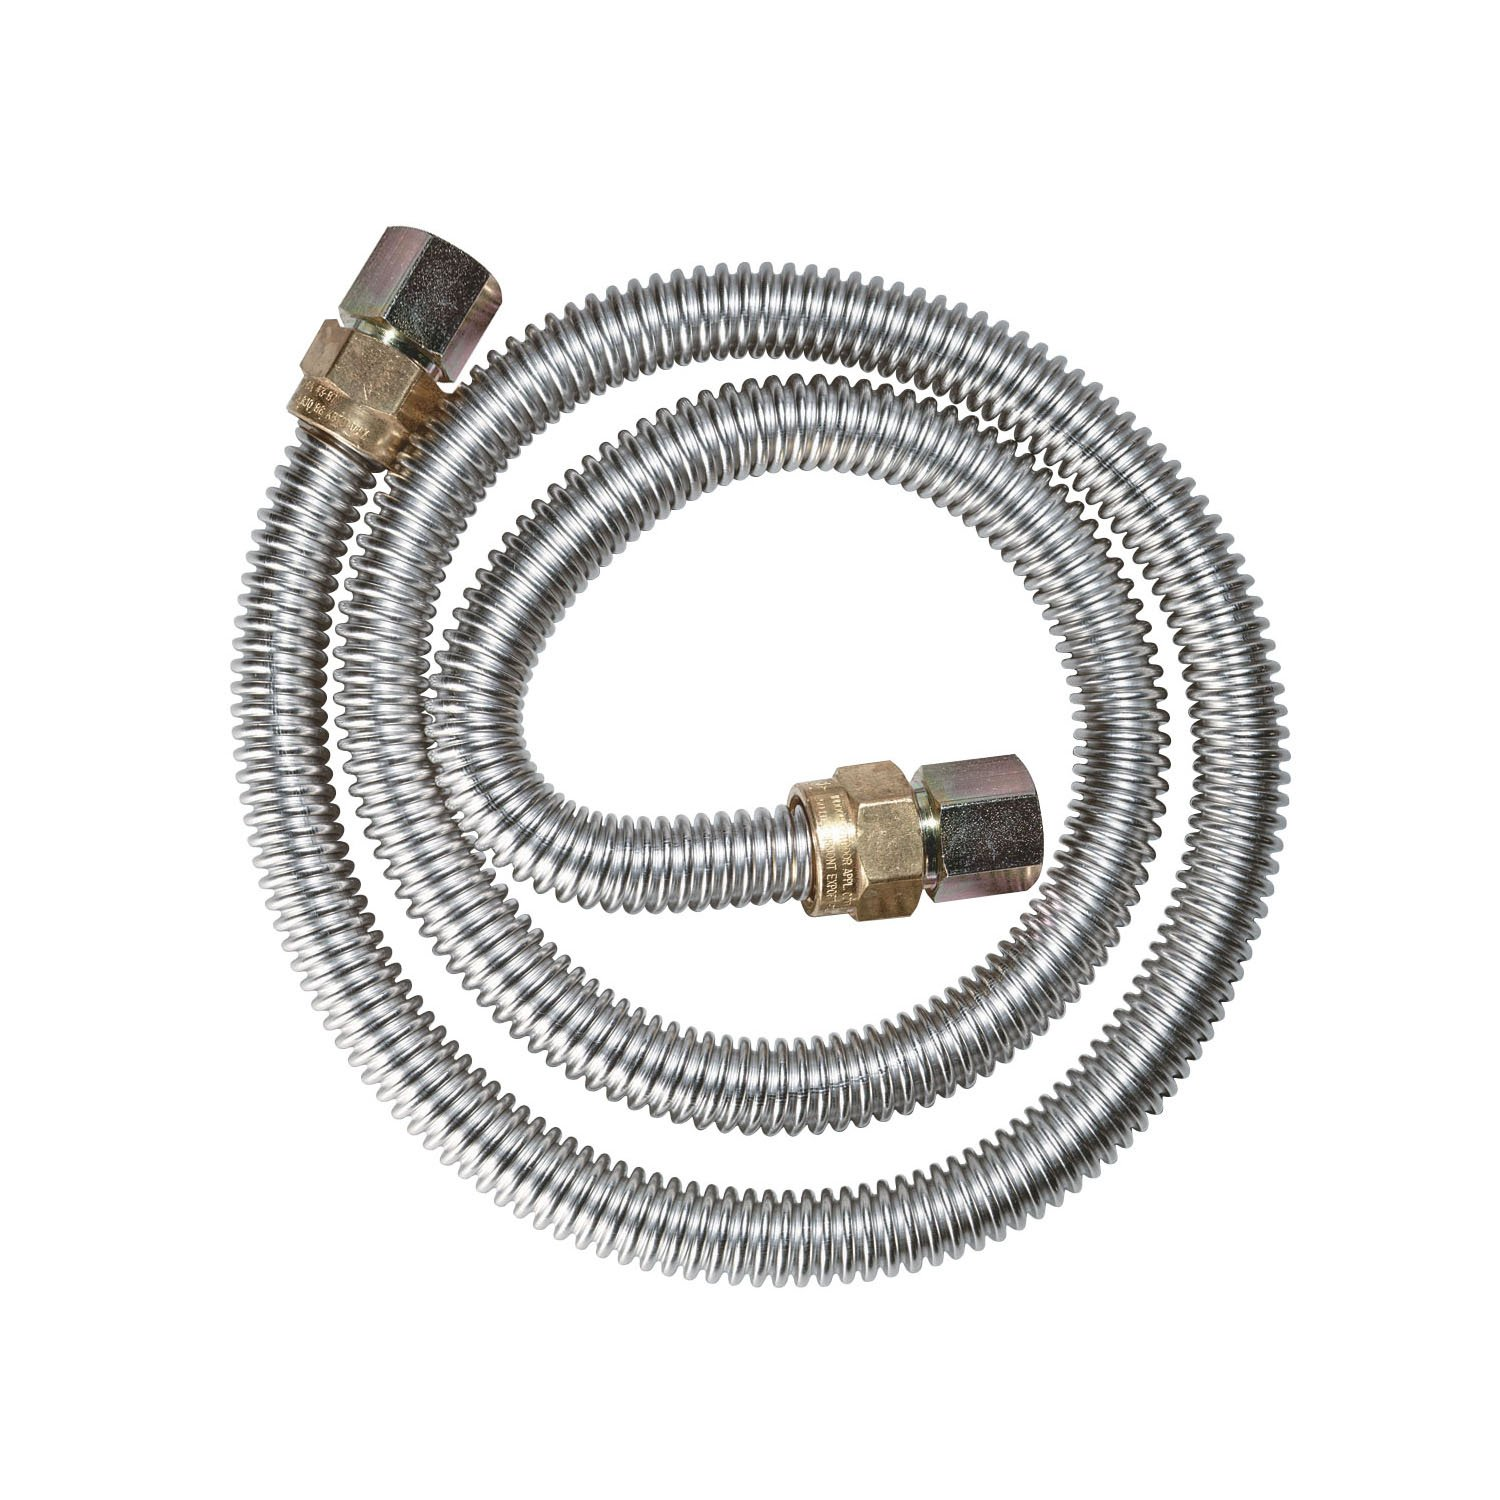 Watts Dormont 30-4242-24B Gas Range 5/8-Inch Diameter Connector, 24-Inch Length by Watts